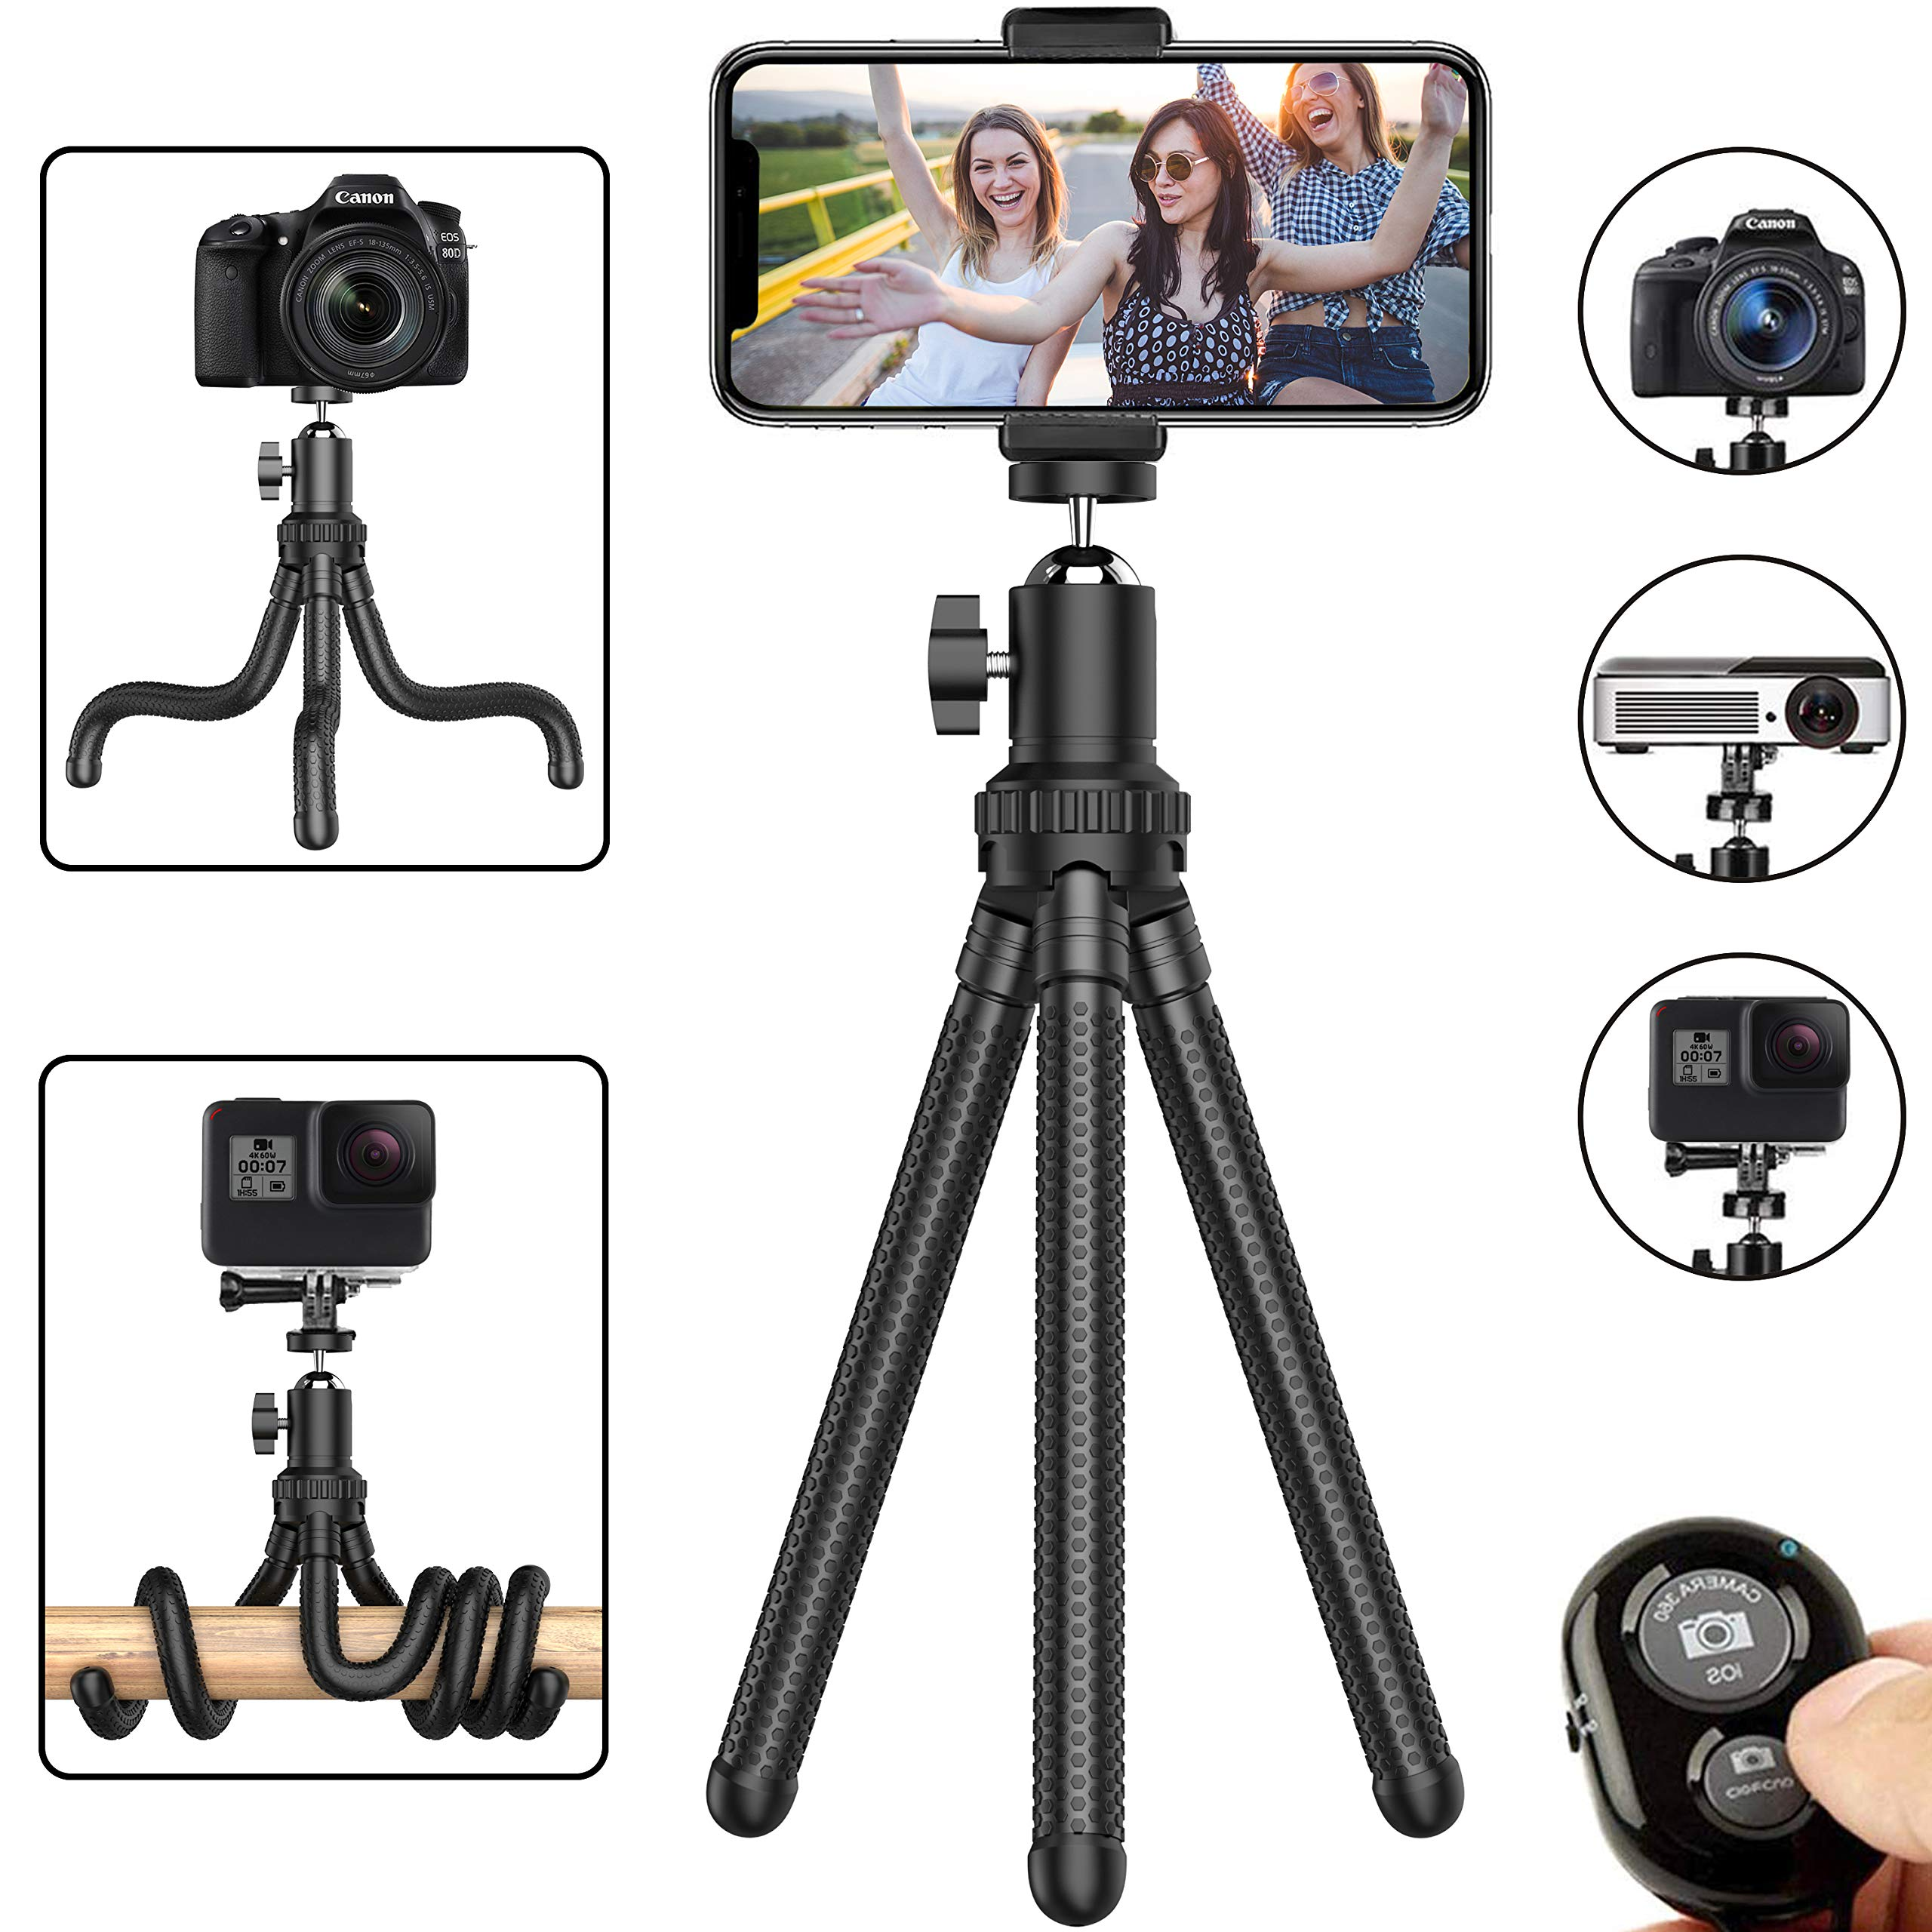 Phone Tripod, Flexible Cell Phone Tripod Adjustable Camera Stand Holder with Wireless Remote and Universal Clip 360° Rotating Mini Tripod Stand for iPhone, Samsung Android Phone, Sports Camera GoPro by Erligpowht